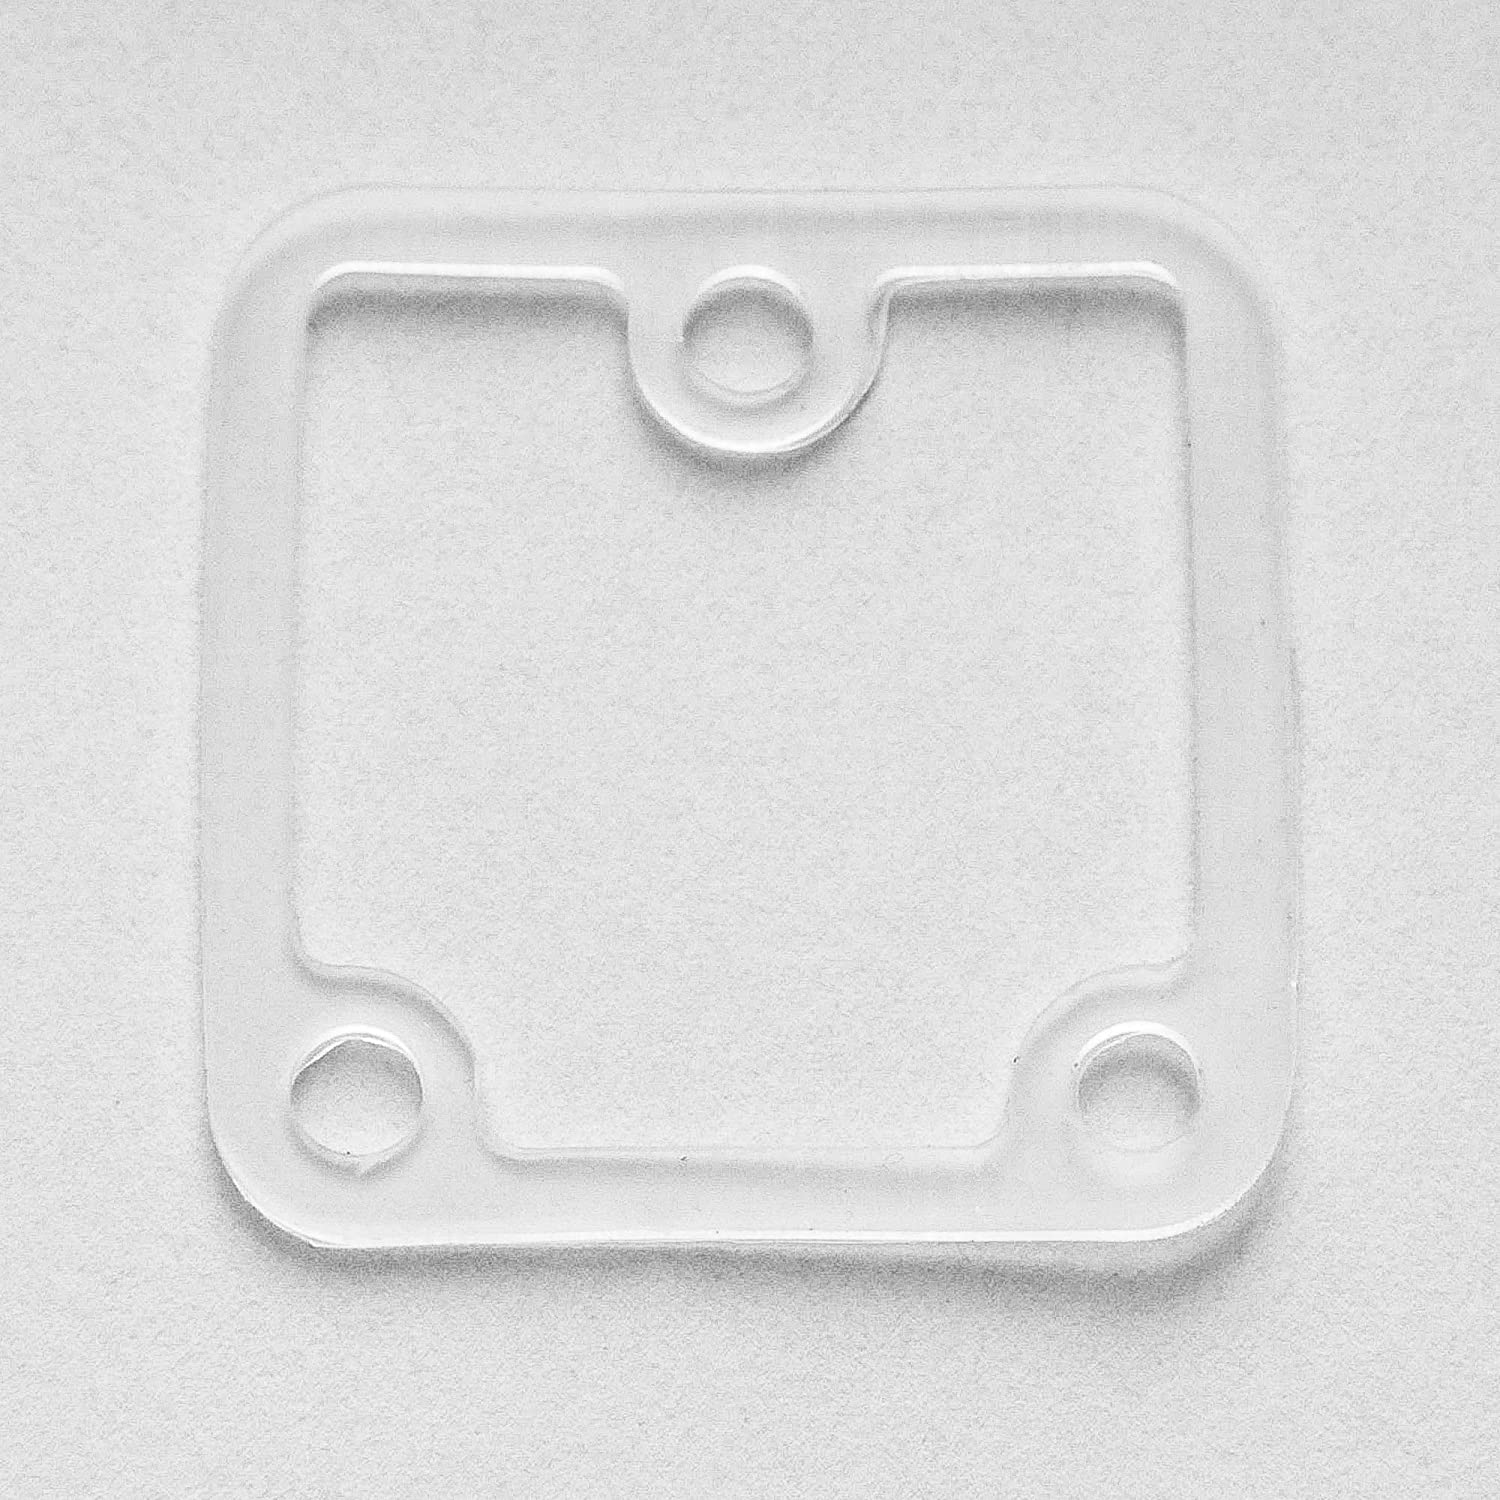 Land Rover Discovery 2 II Range Rover P38a Throttle Body Heater Plate Flange Defroster Repair SILICONE Gasket